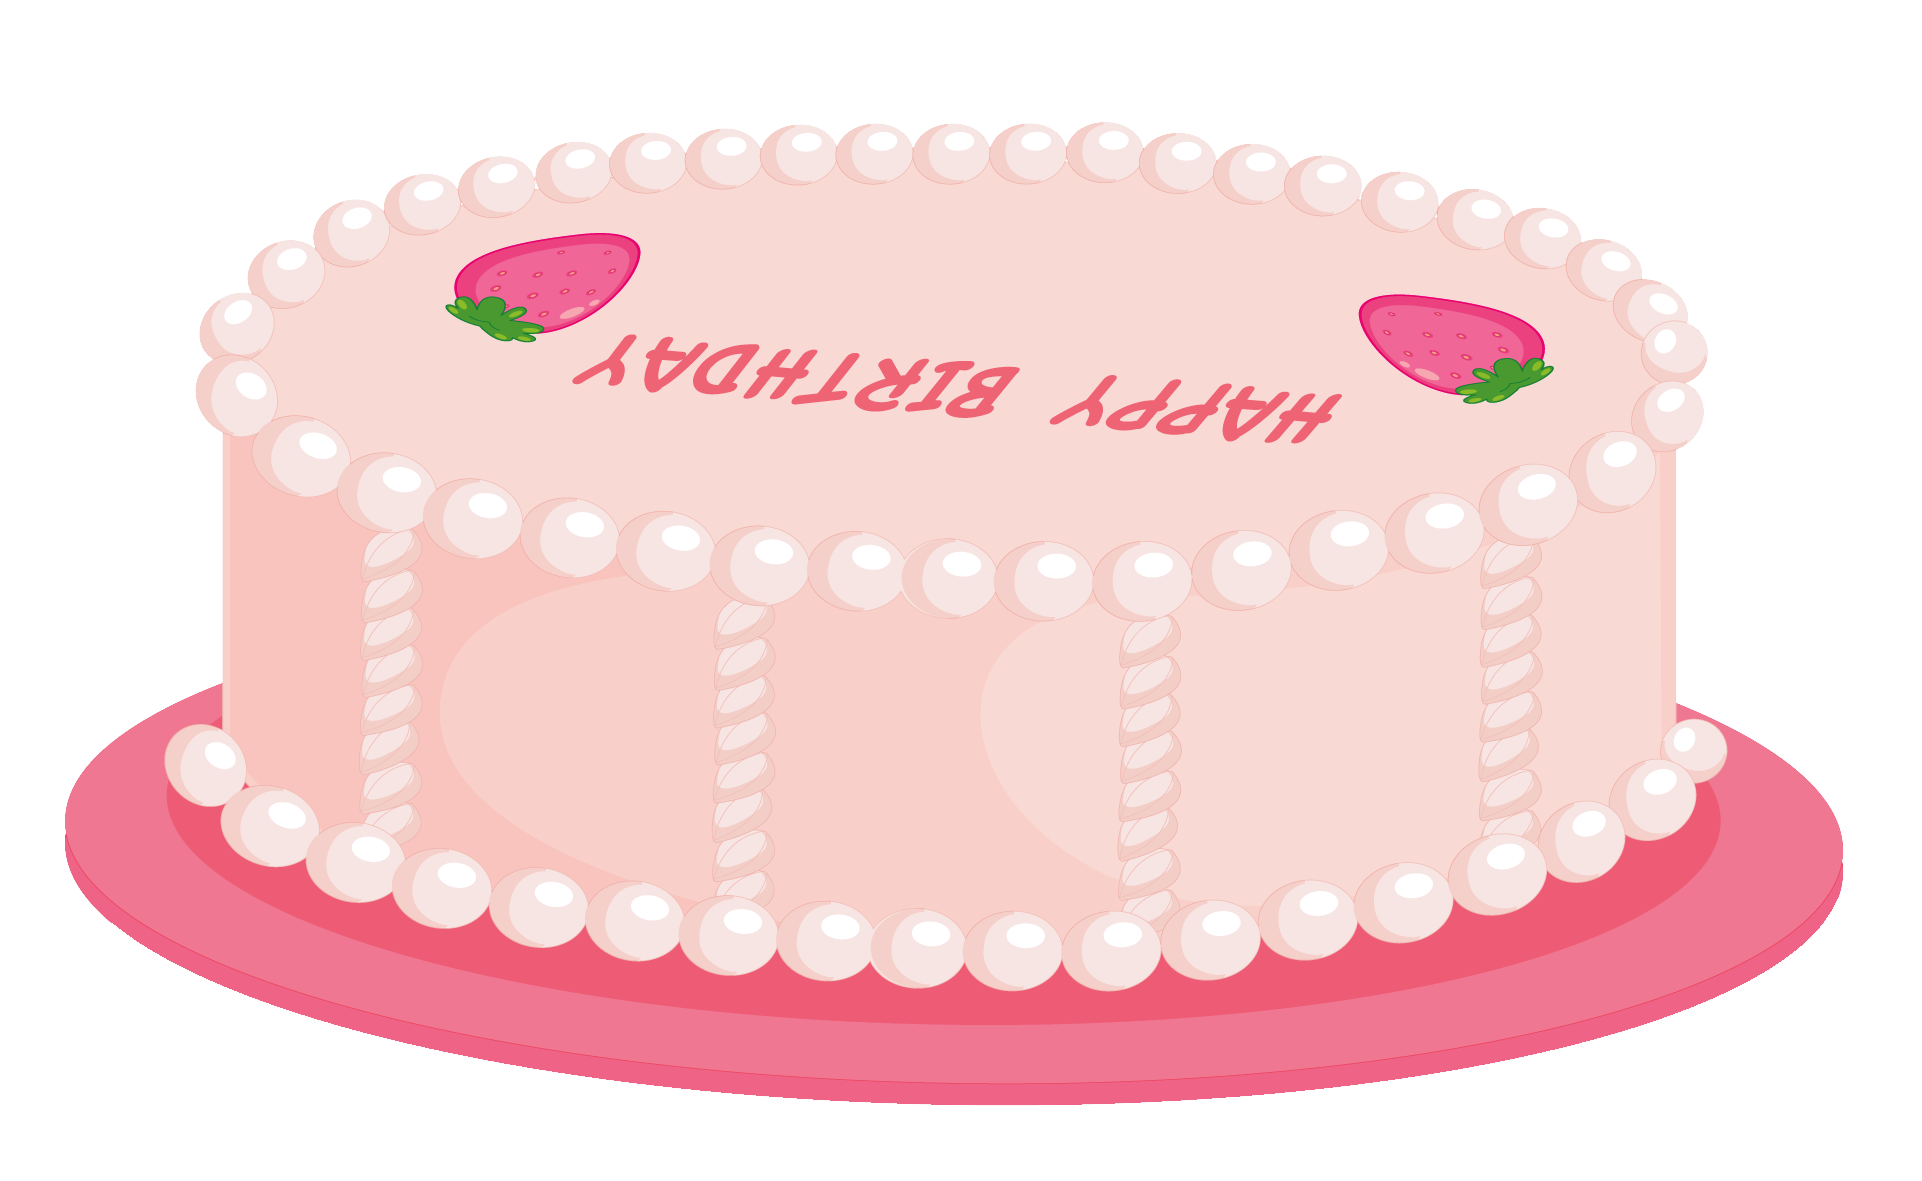 Cookies clipart cookie cake. Pink happy birthday png